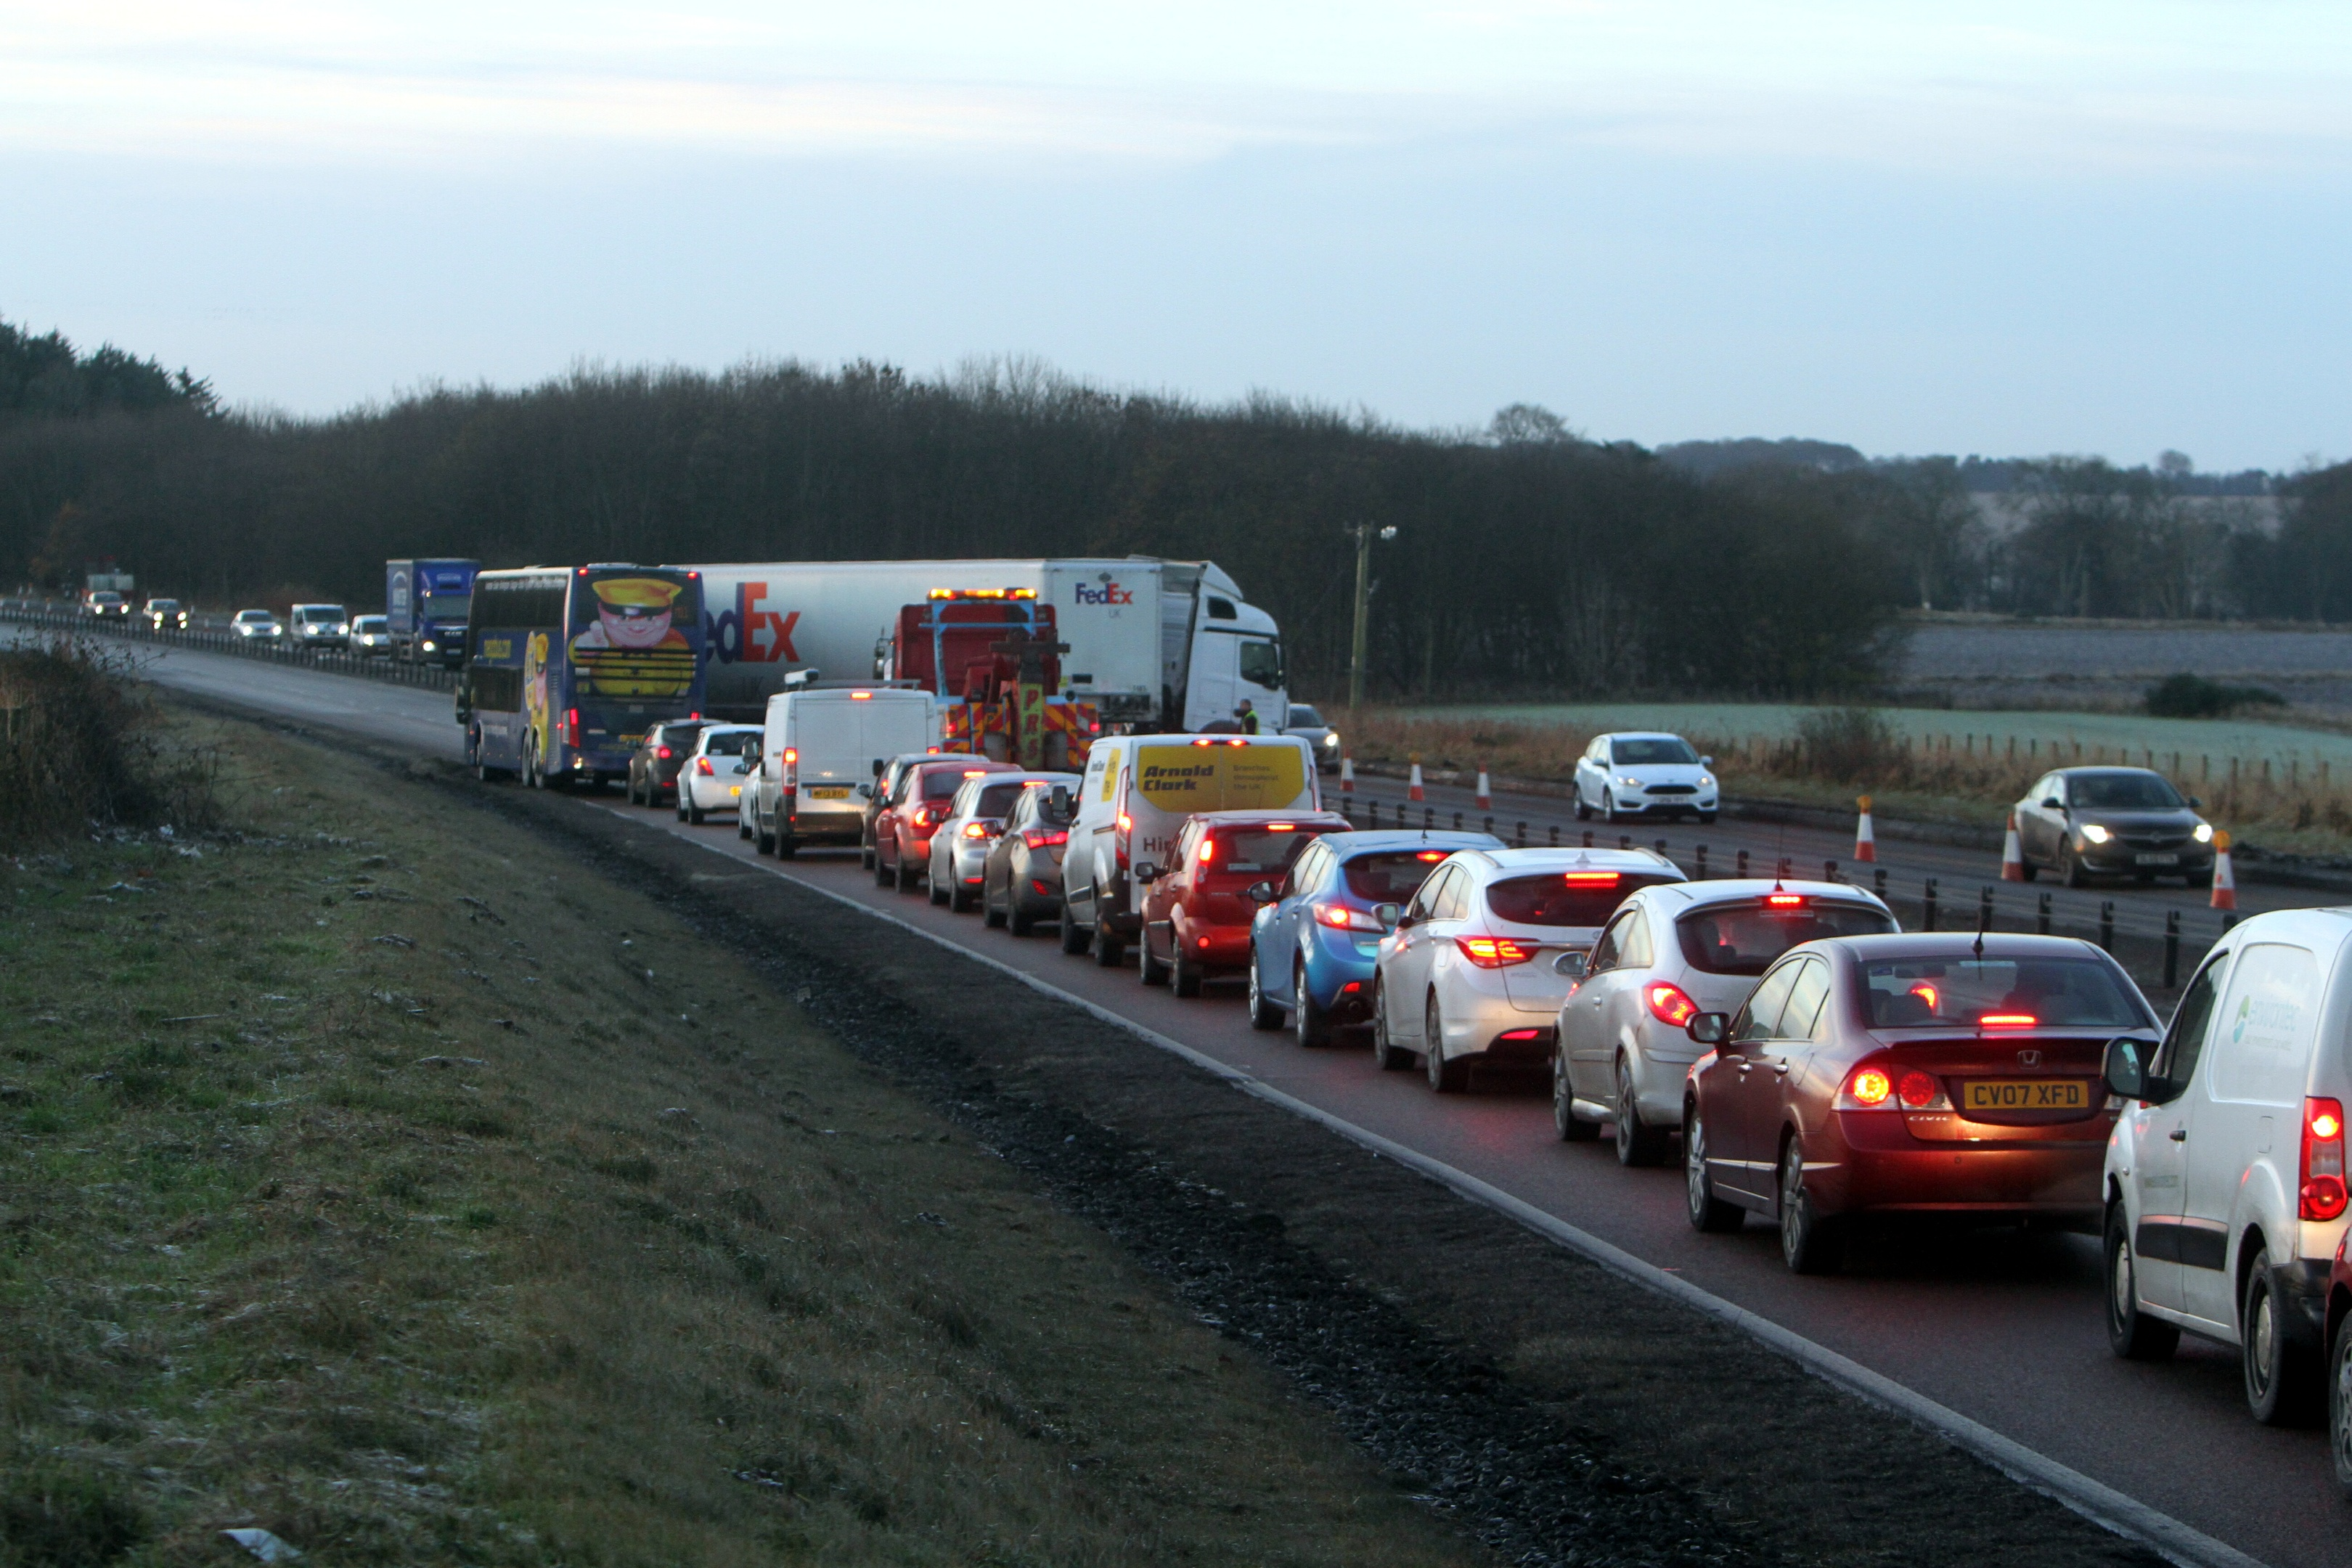 The articulated lorry ended up jackknifed, across three lanes of traffic at about 5.25am.